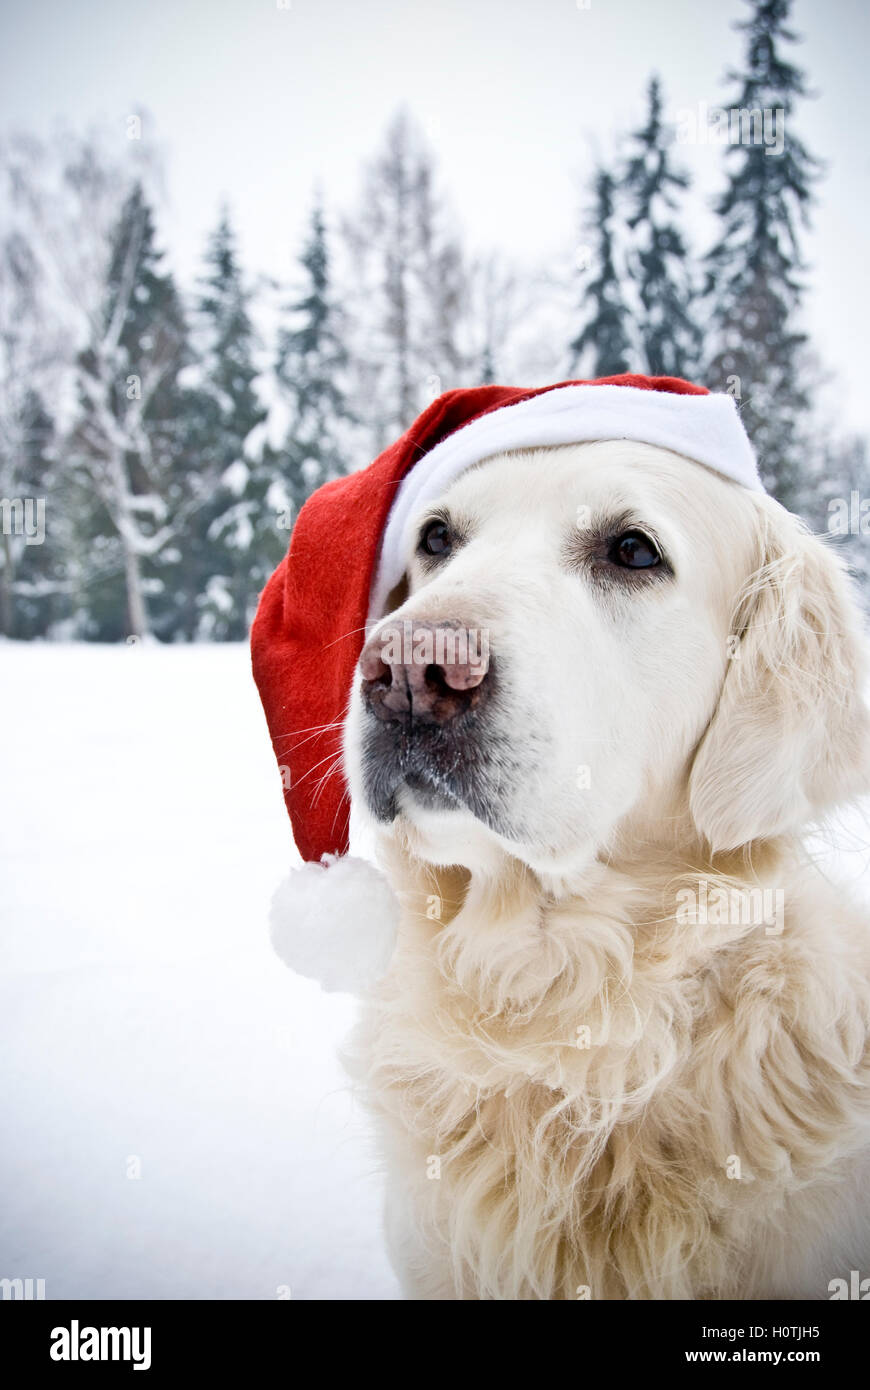 golden retriever with Santa hat - Stock Image